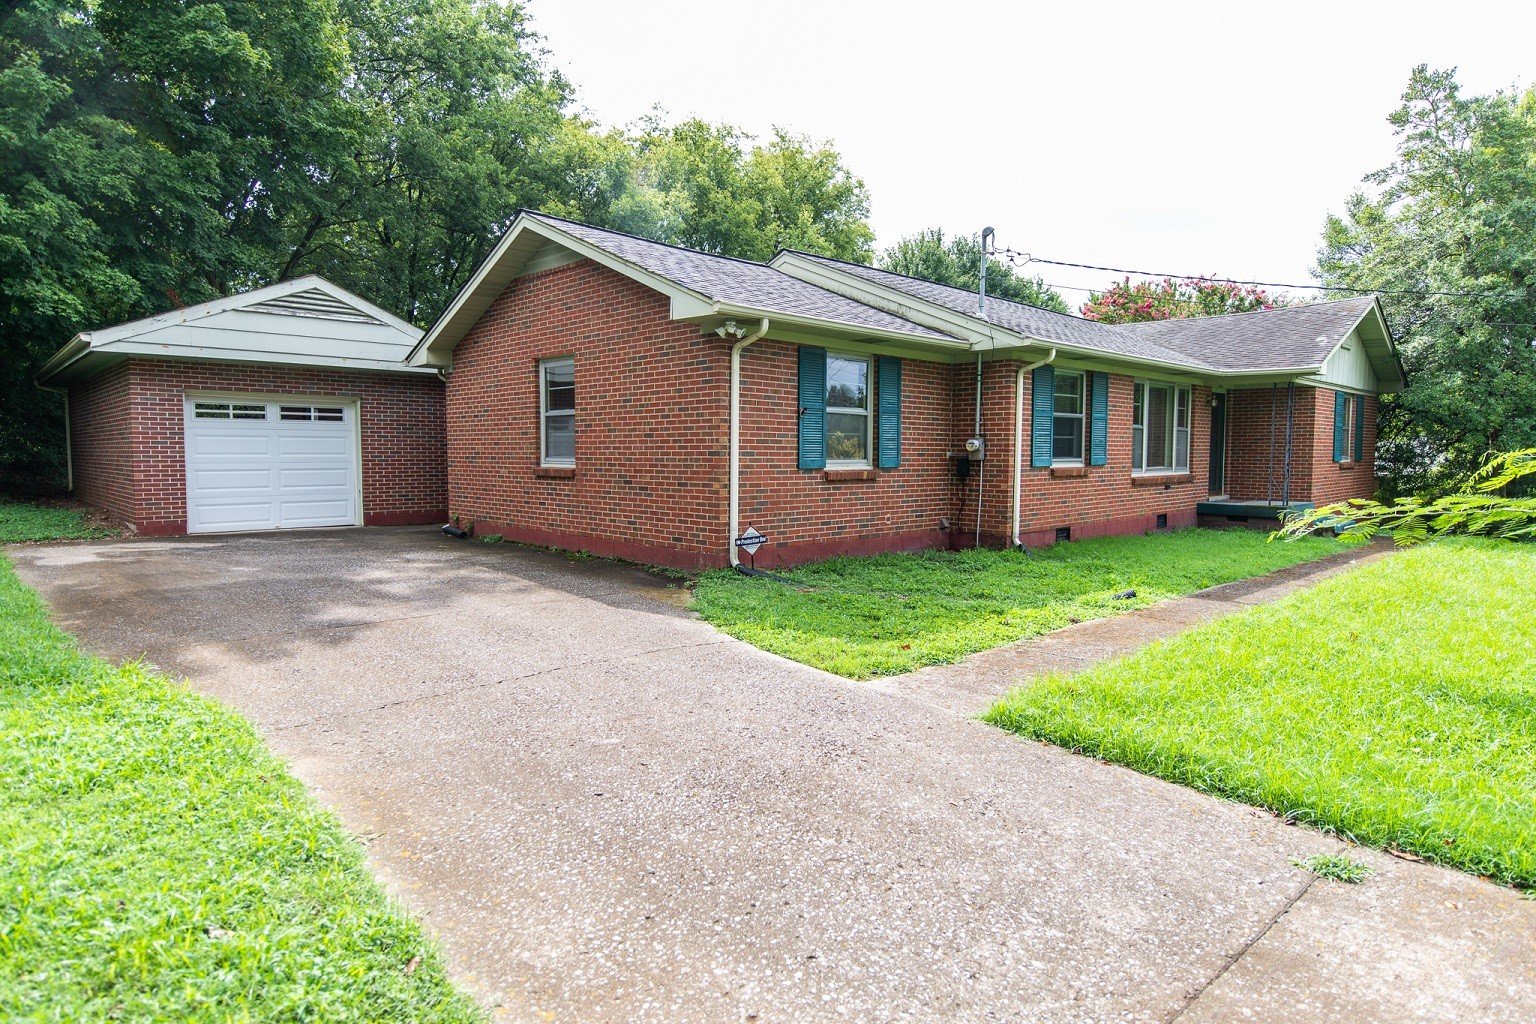 Solid Brick Ranch Home With Large Private Yard And Covered Patio!  2511 Western Hills Dr, Nashville, TN.  37214